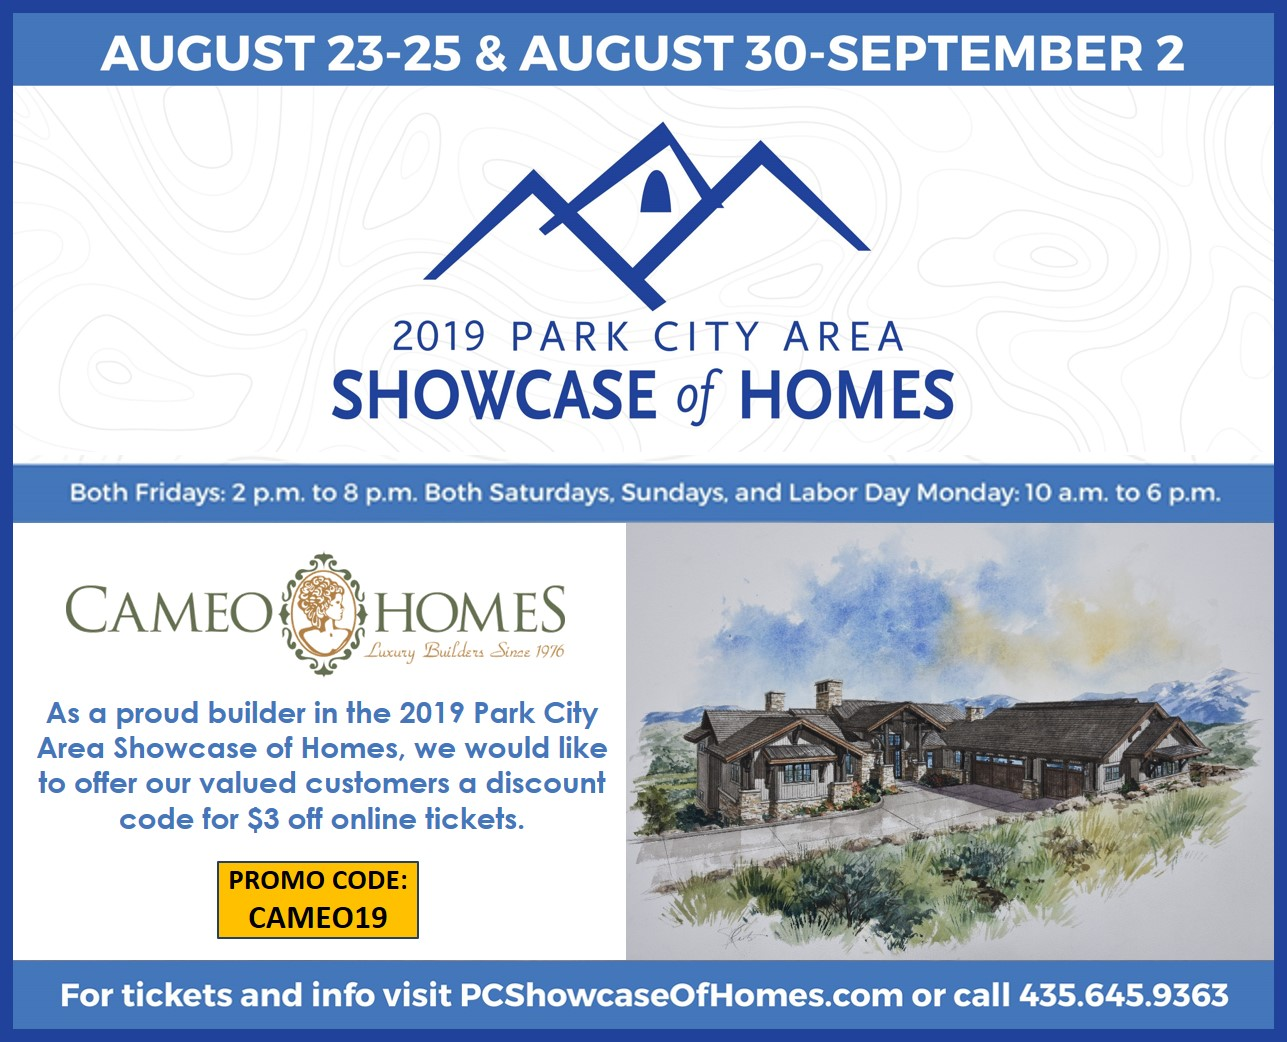 CAMEO HOMES INC.